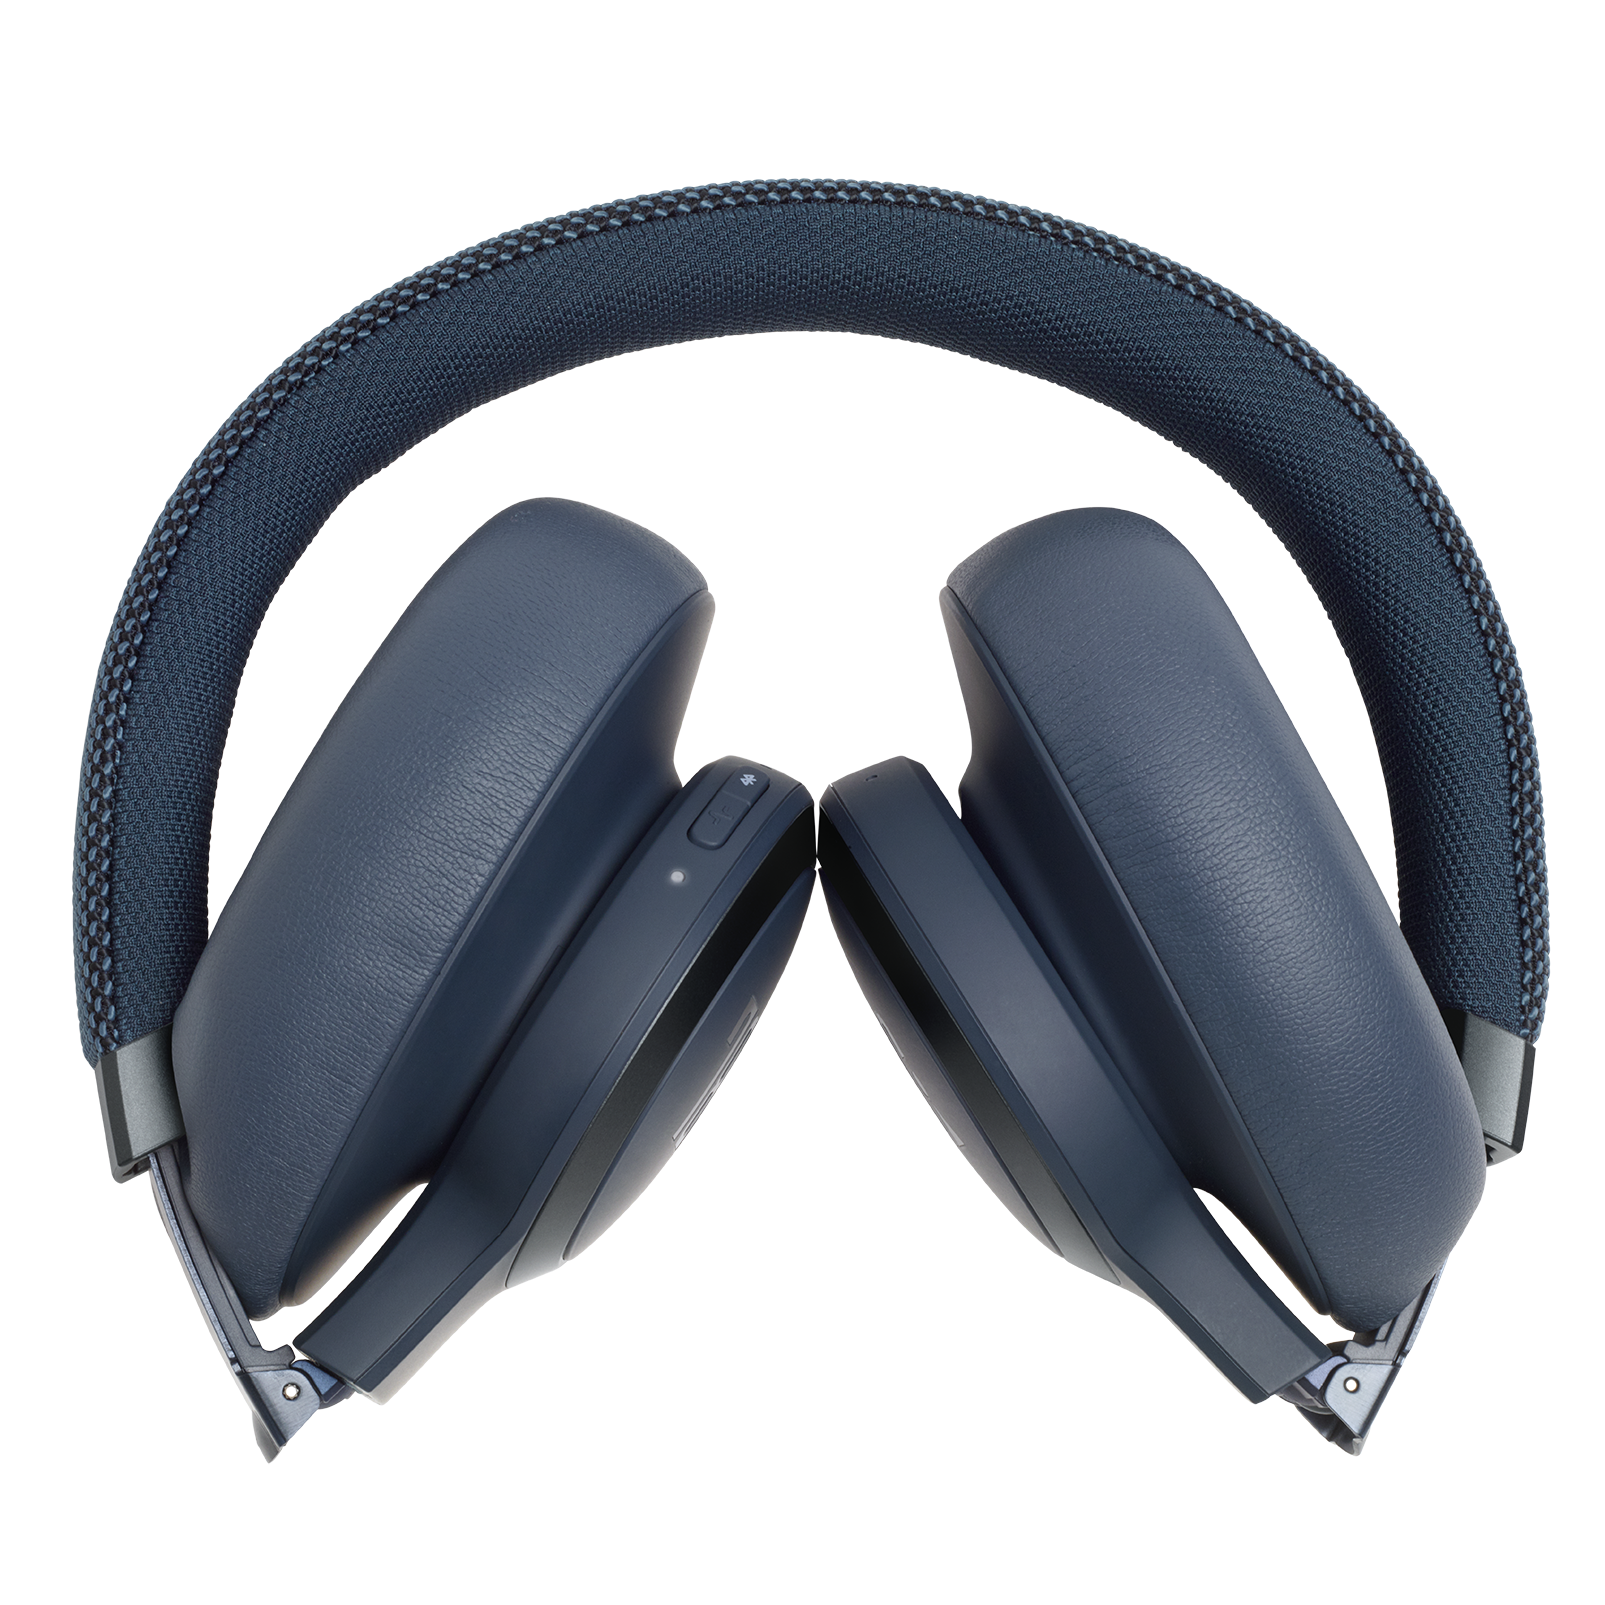 JBL LIVE 650BTNC - Blue - Wireless Over-Ear Noise-Cancelling Headphones - Detailshot 8